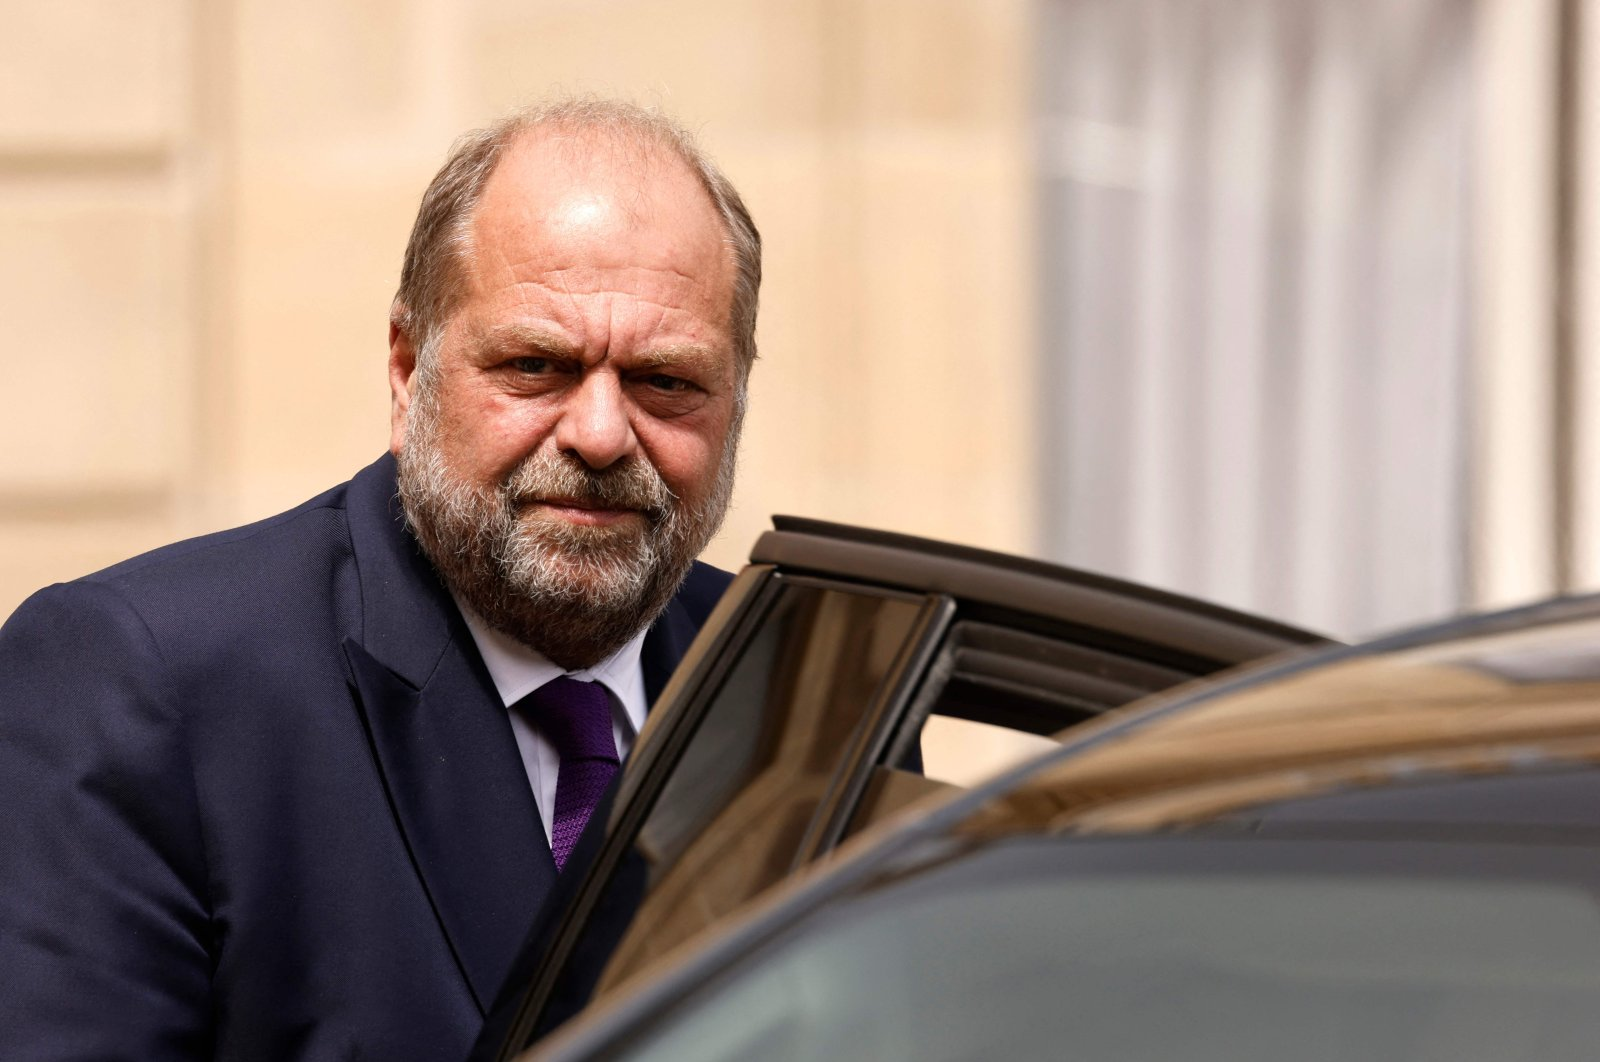 French Justice Minister Eric Dupond-Moretti leaves after taking part in the weekly Cabinet meeting at The Elysee Presidential Palace, Paris, France, July 7, 2021. (AFP Photo)